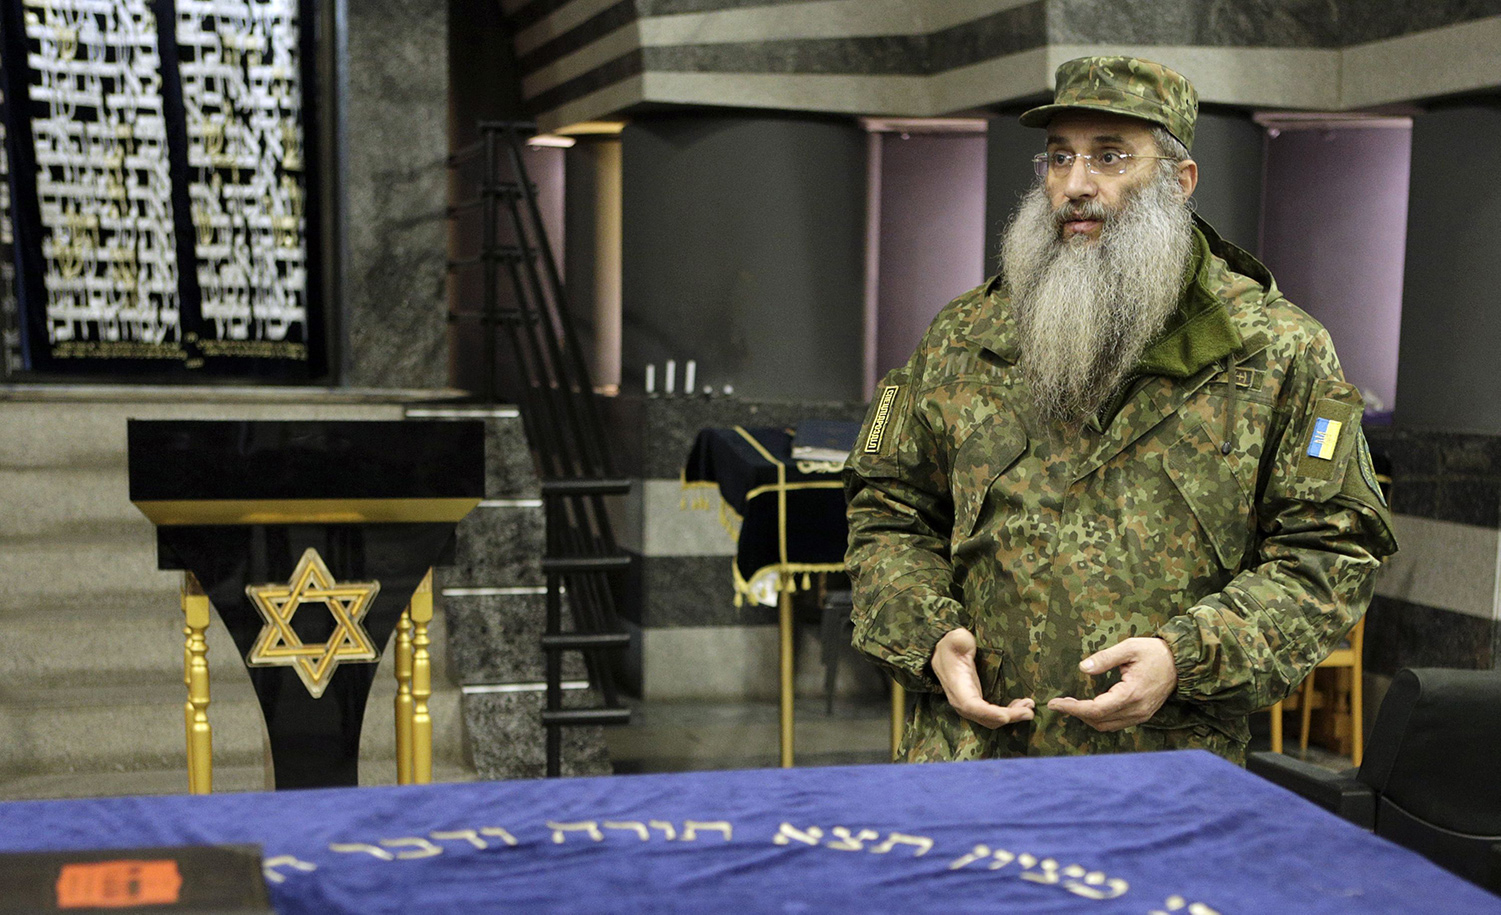 Asher Cherkassky, a Ukrainian Orthodox Jew who joined a pro-Ukrainian volunteer battalion, in southern Ukraine in November 2015.ANATOLII STEPANOV/AFP via Getty Images.